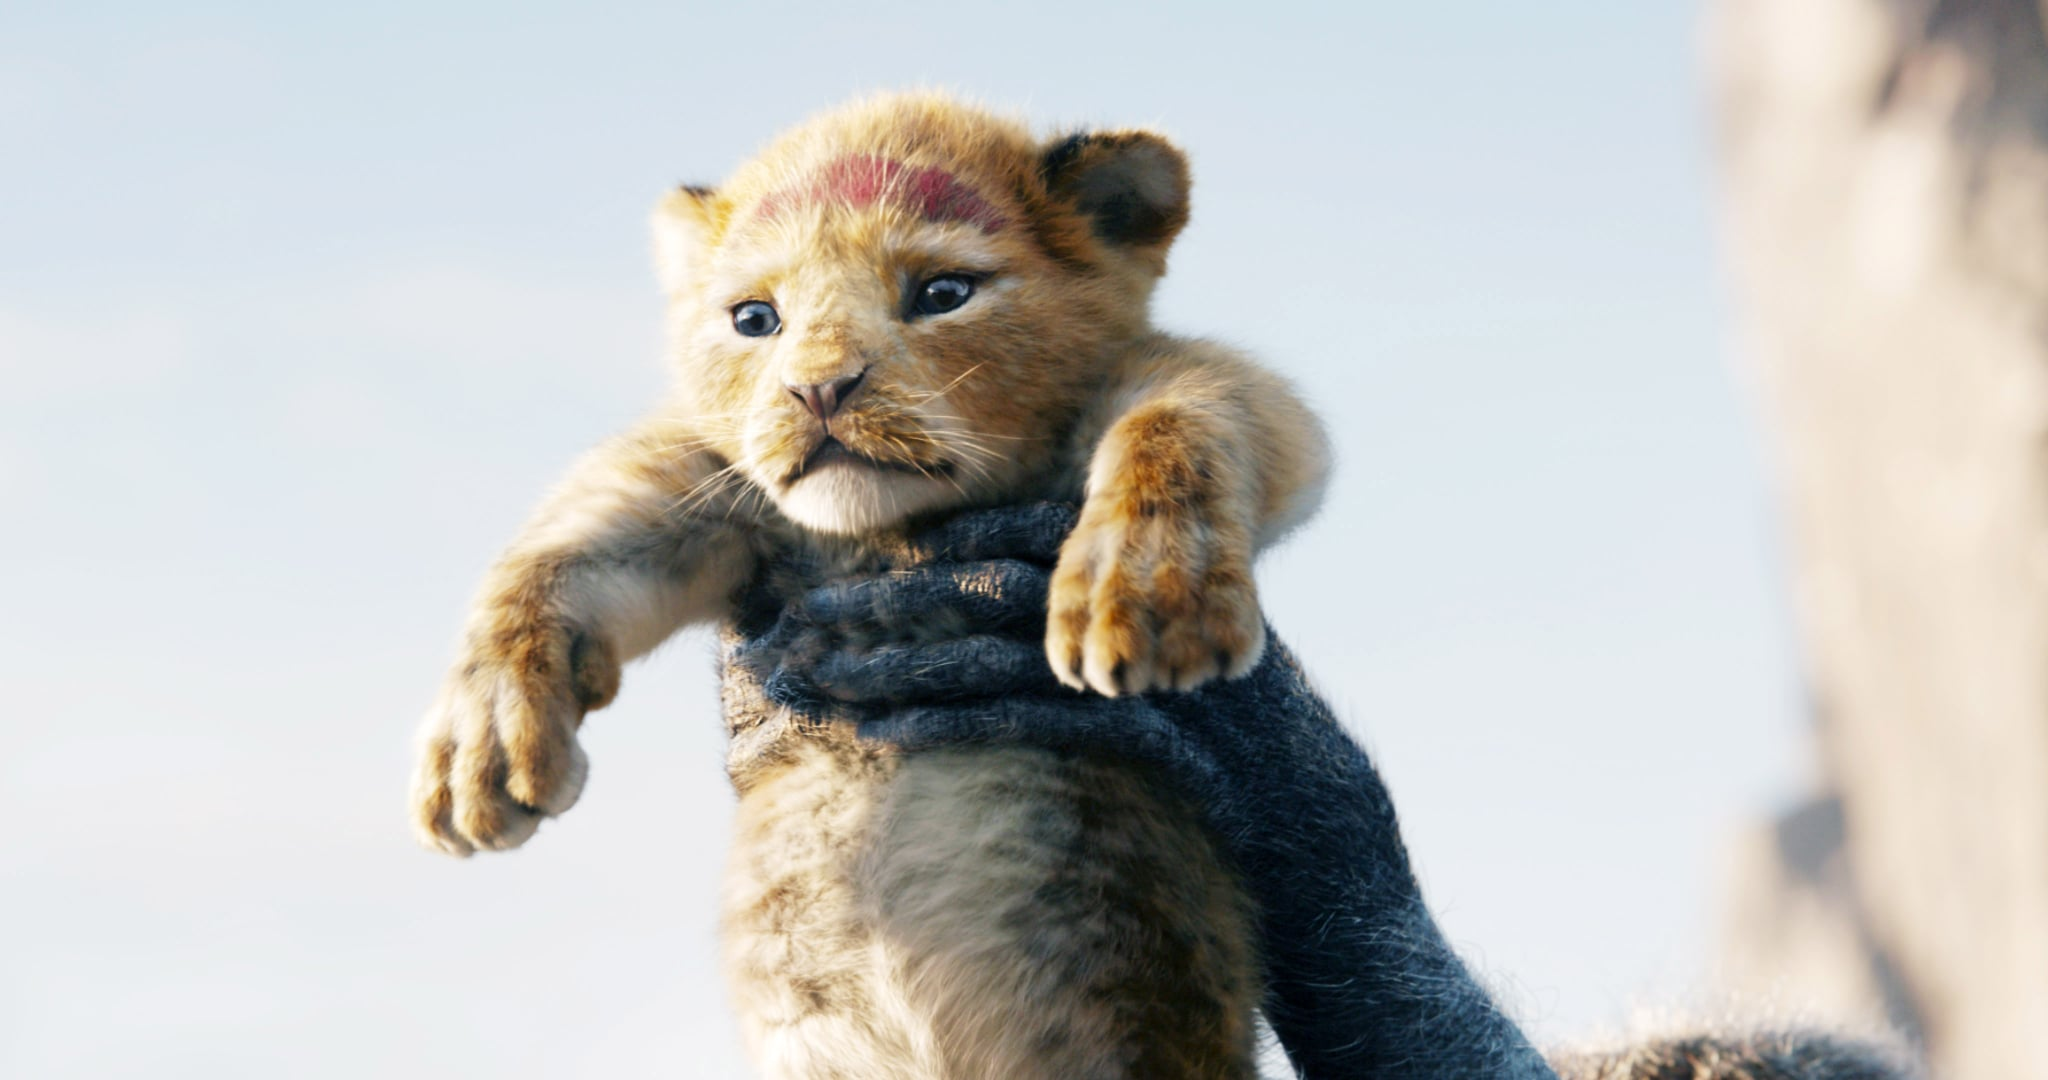 THE LION KING, young Simba (voiced by JD McCrary), 2019.  Walt Disney Studios Motion Pictures / courtesy Everett Collection